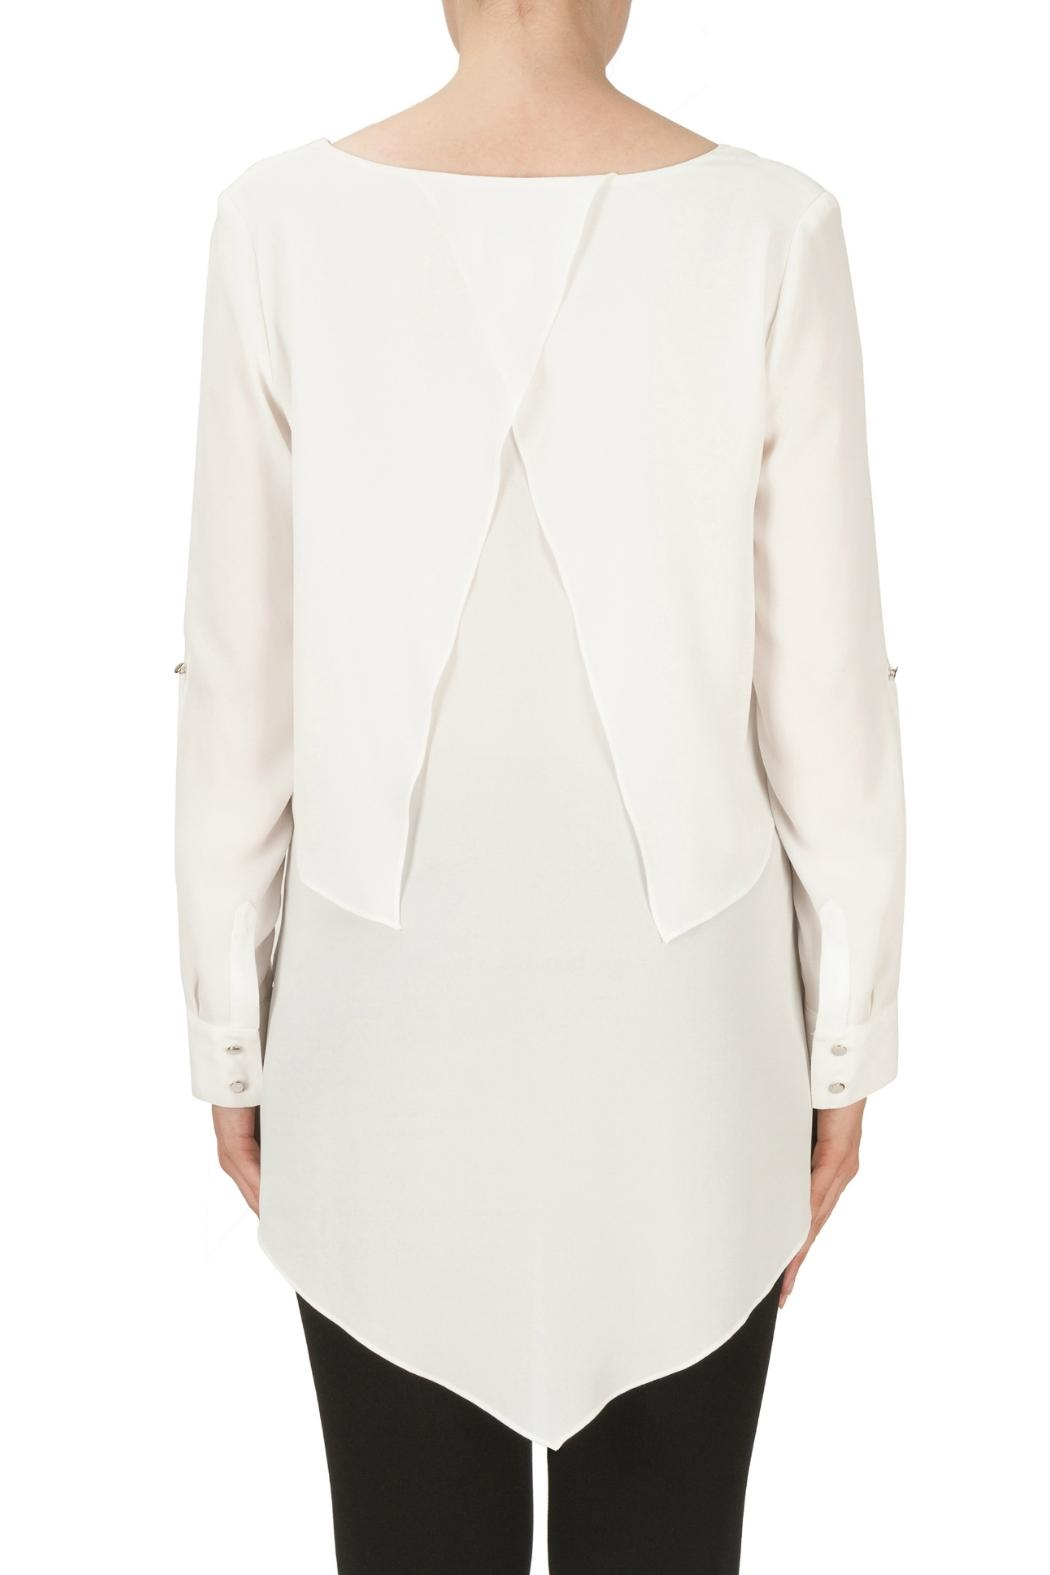 Joseph Ribkoff Layer Cuffed Blouse - Side Cropped Image